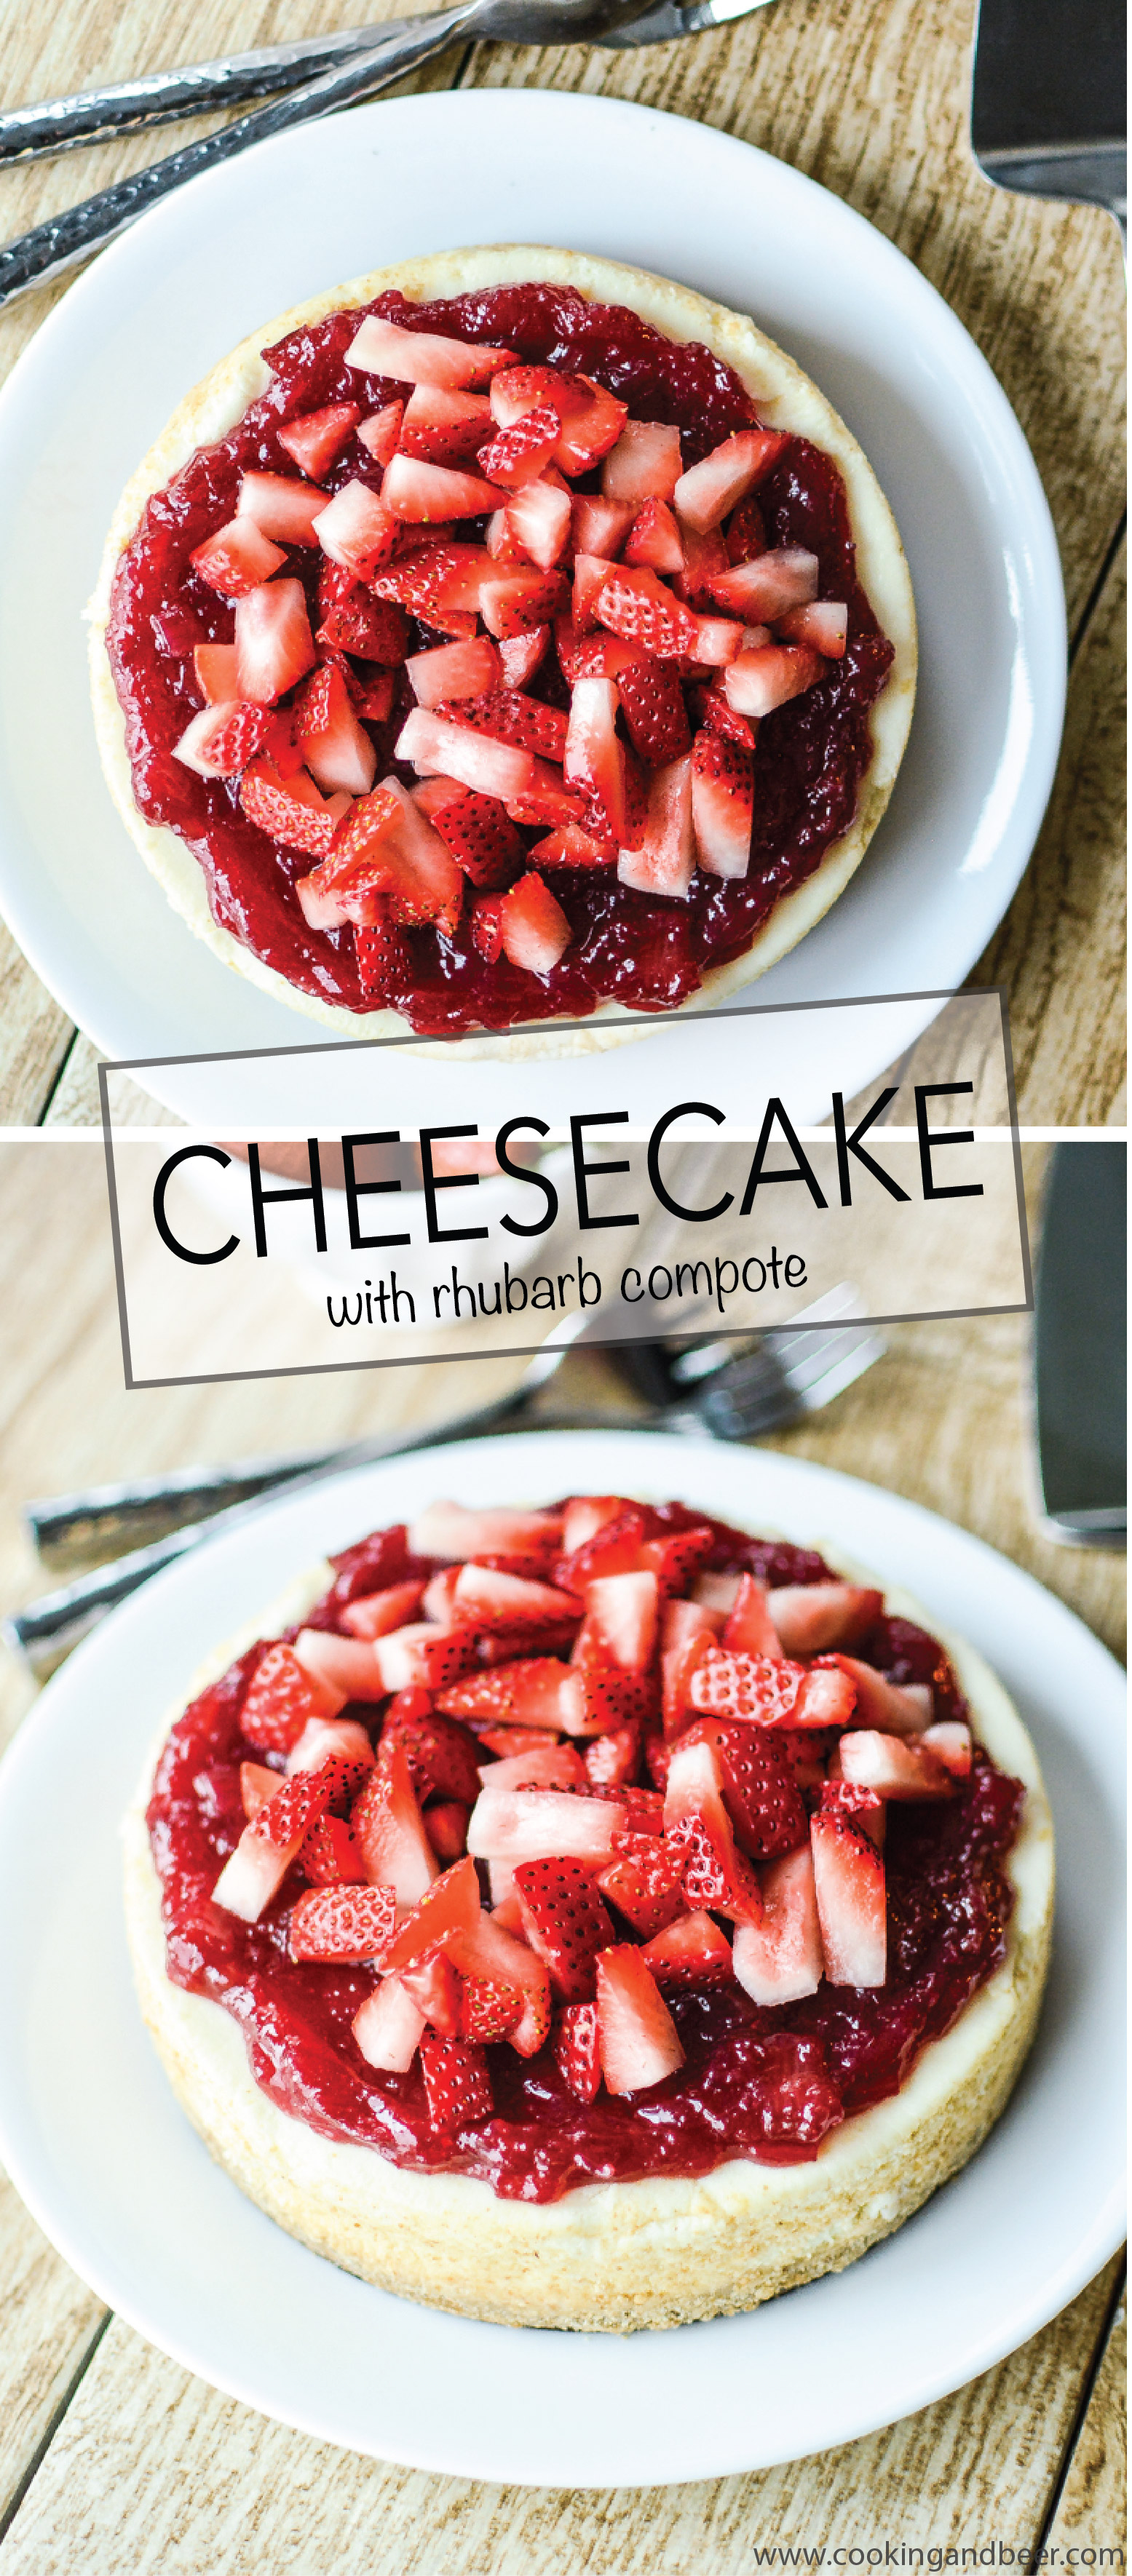 Cheesecake with Rhubarb Compote and Strawberry is sweet and delicious and the perfect way to celebrate summer! | www.cookingandbeer.com